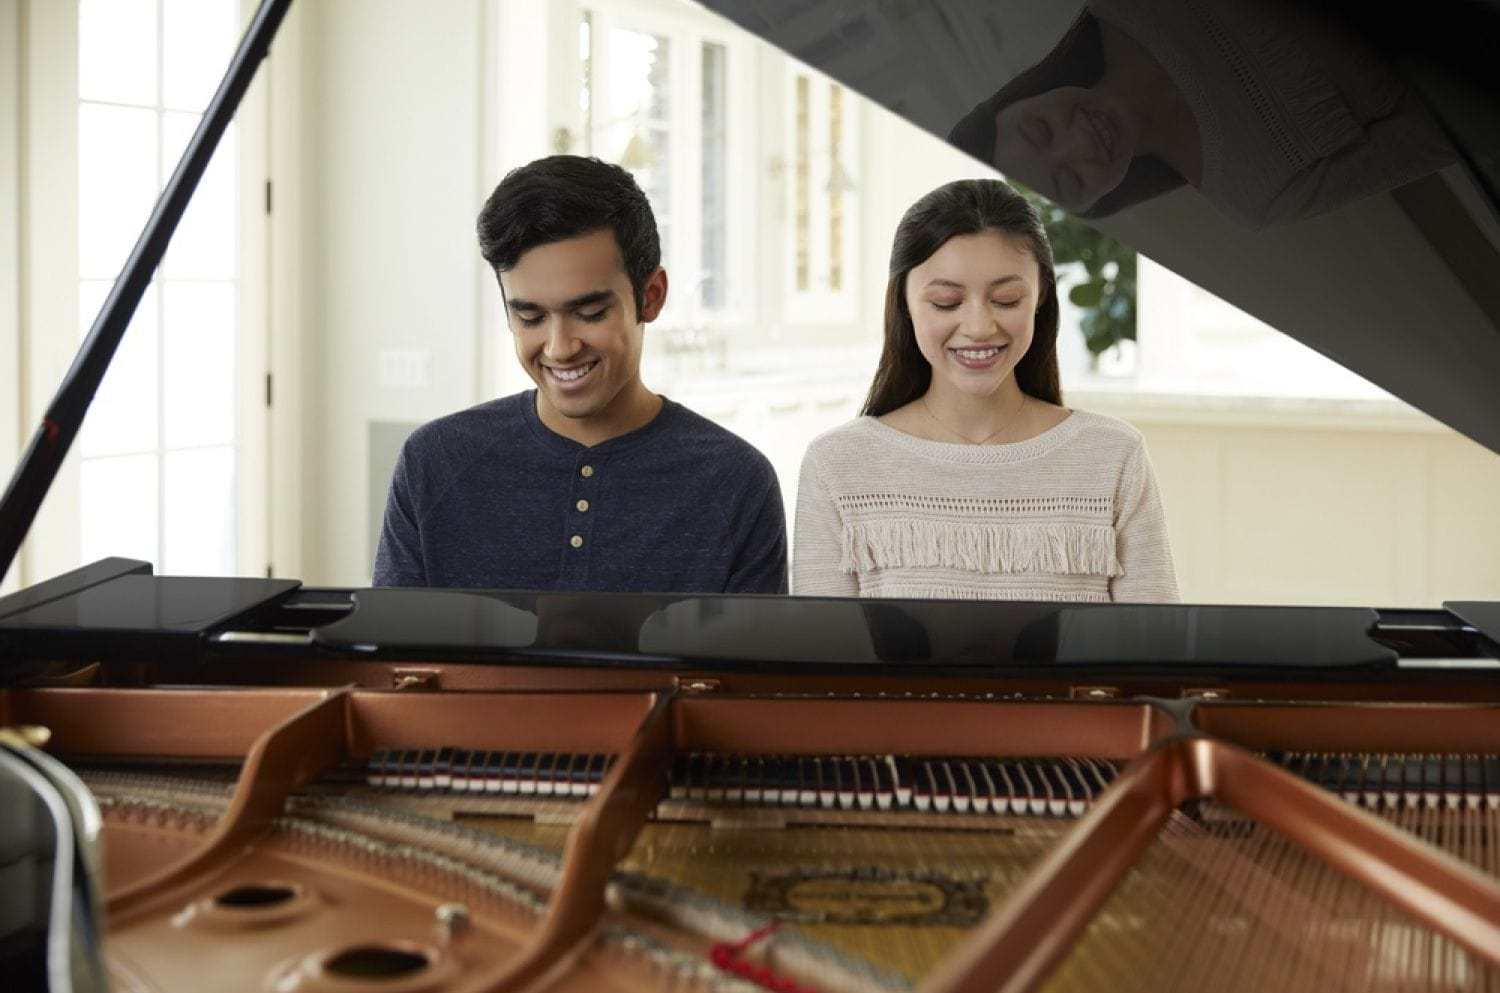 Young man and young woman seated side by side smiling and playing piano with lid open in foreground.